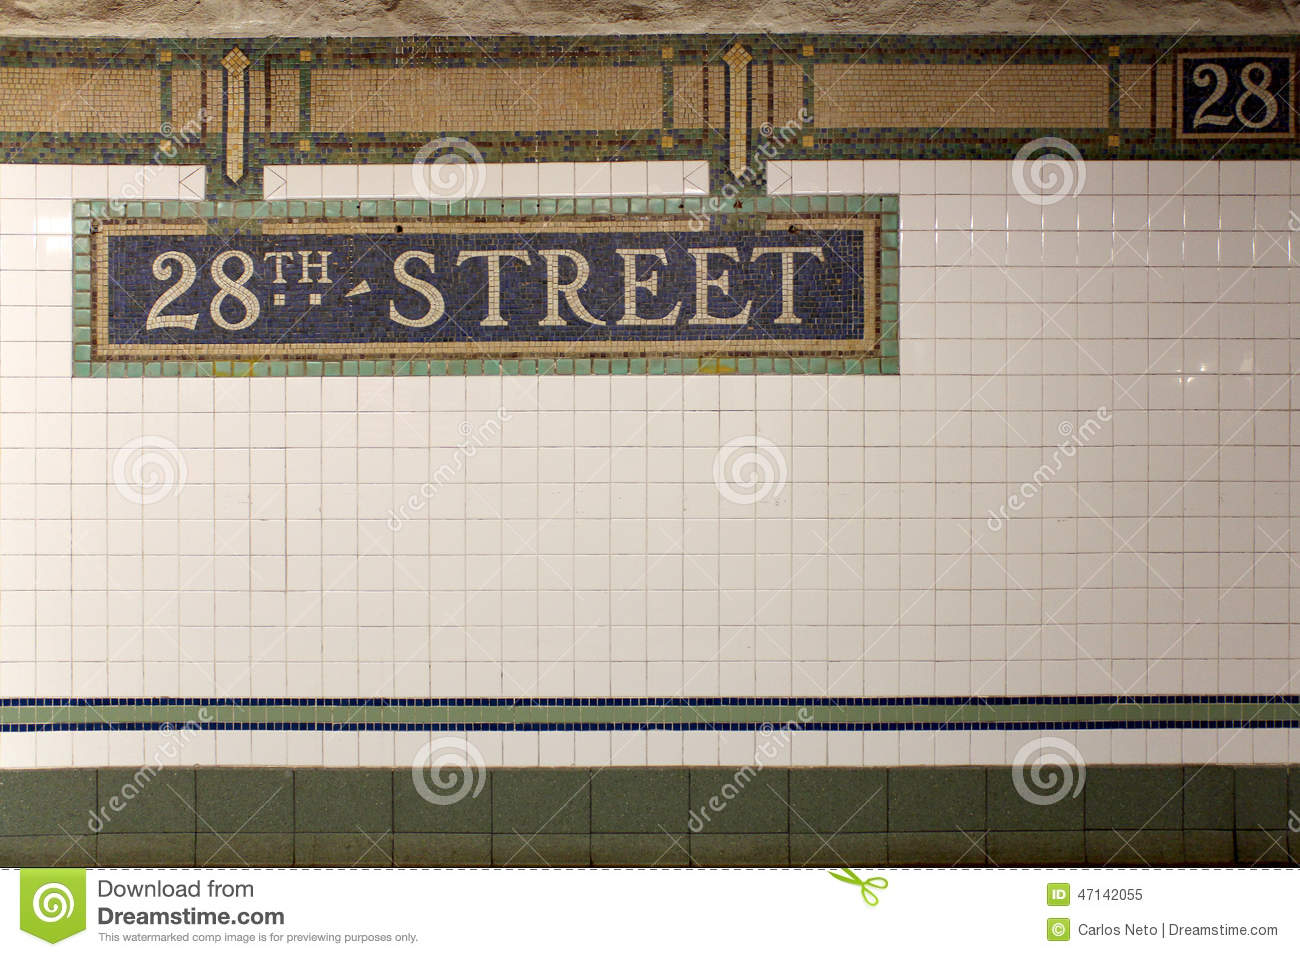 New york city station subway 28th street sign on tile wall stock new york city station subway 28th street sign on tile wall dailygadgetfo Choice Image